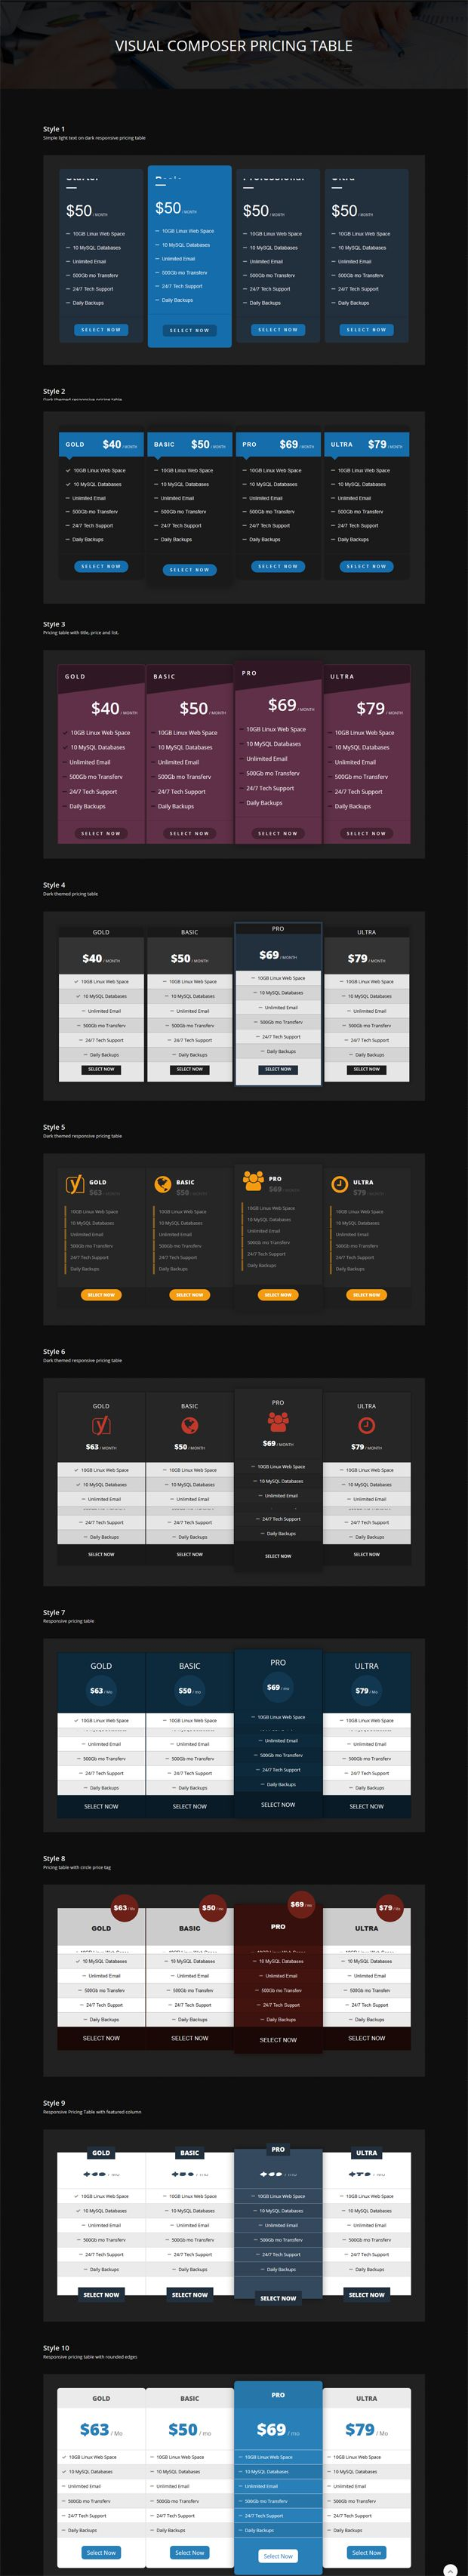 Malkoo Pricing Table Addon For Visual Composer (Add-ons)